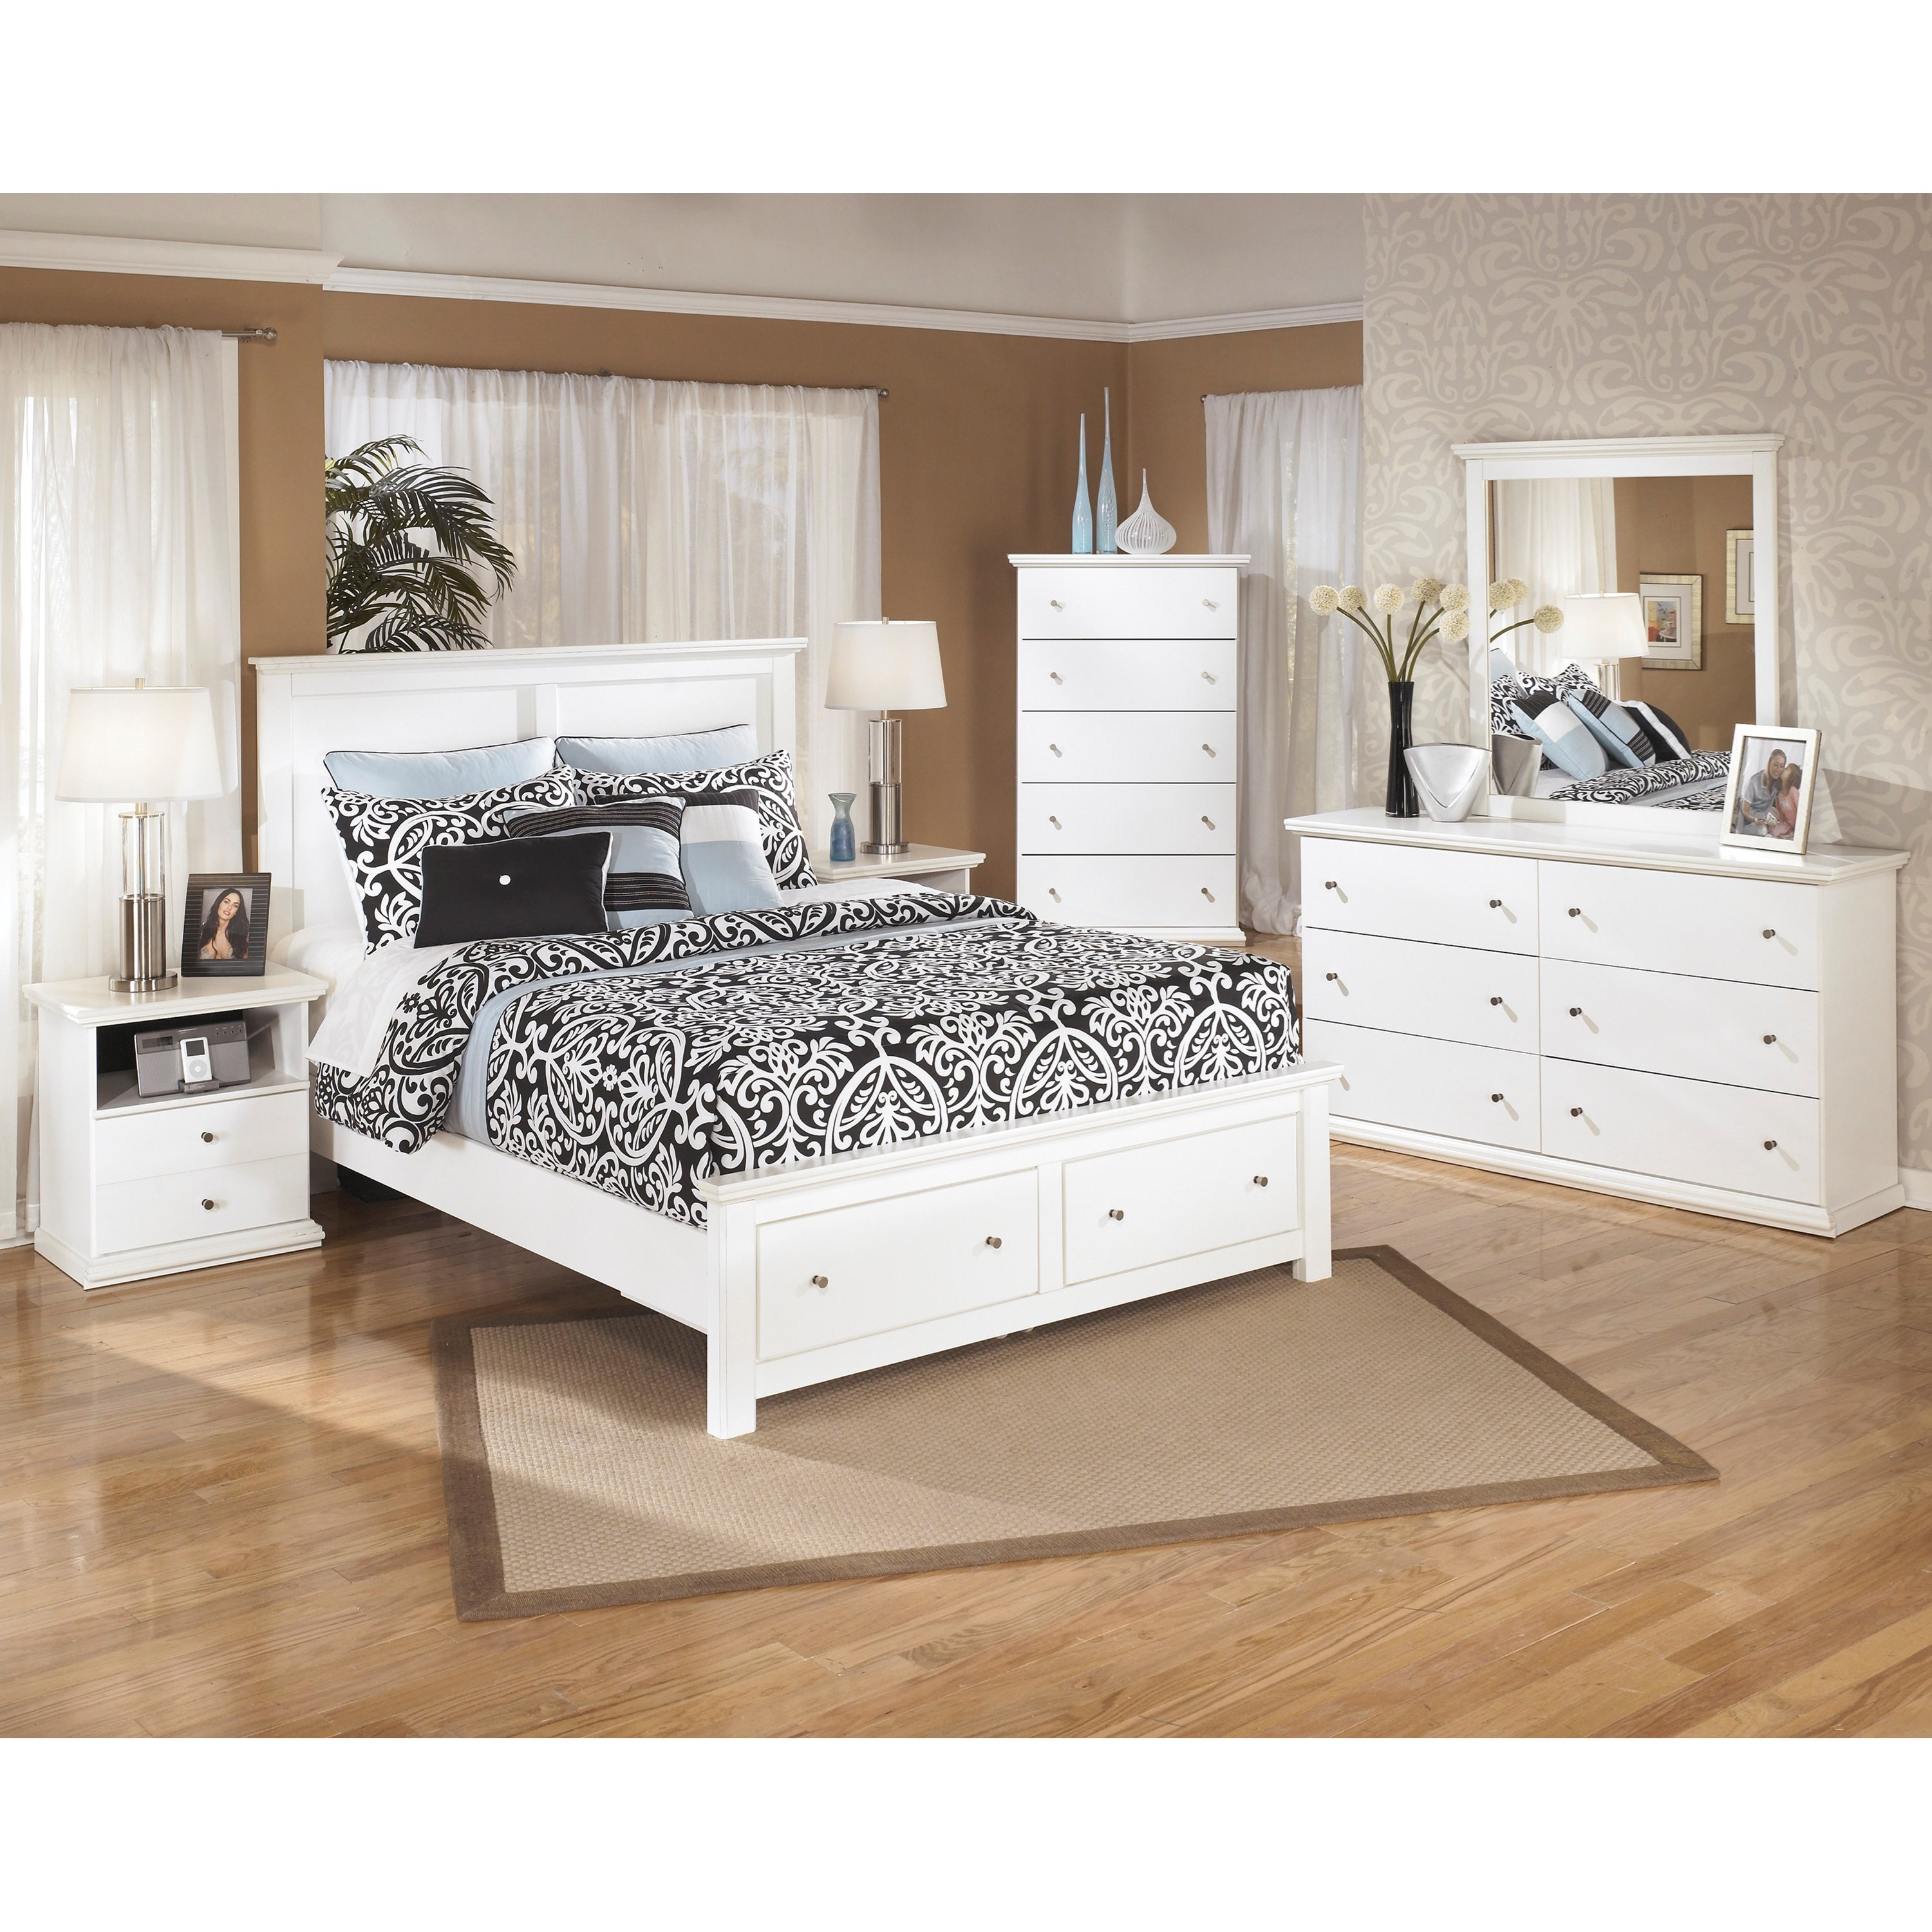 Signature Design by Ashley Bostwick Shoals Queen Bedroom Group - Item Number: B139 Q Bedroom Group 2